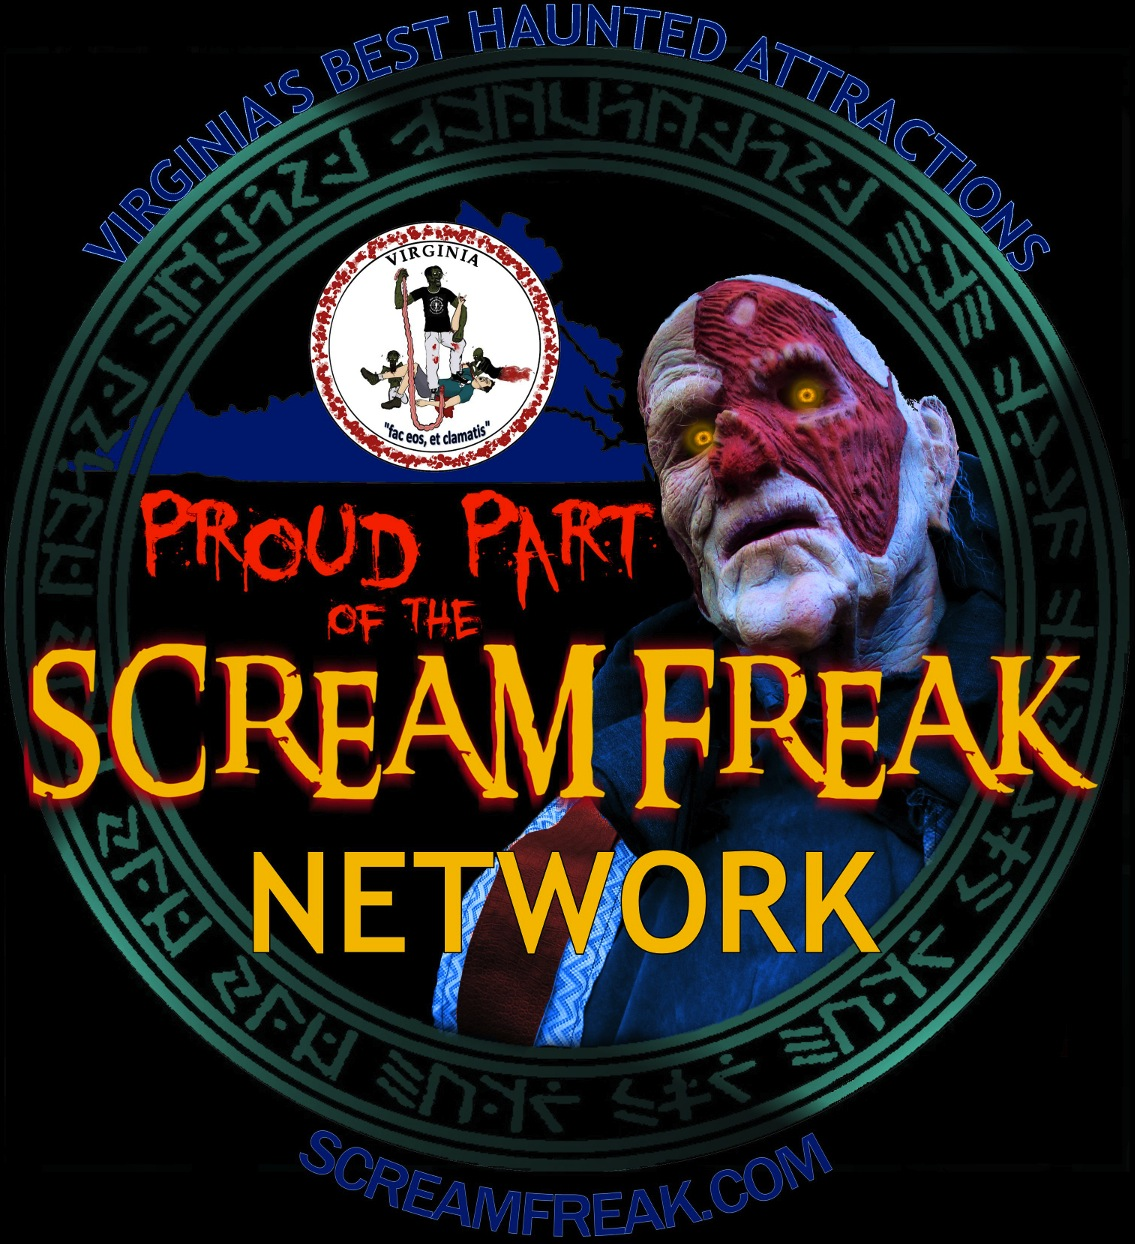 ScreamFreak